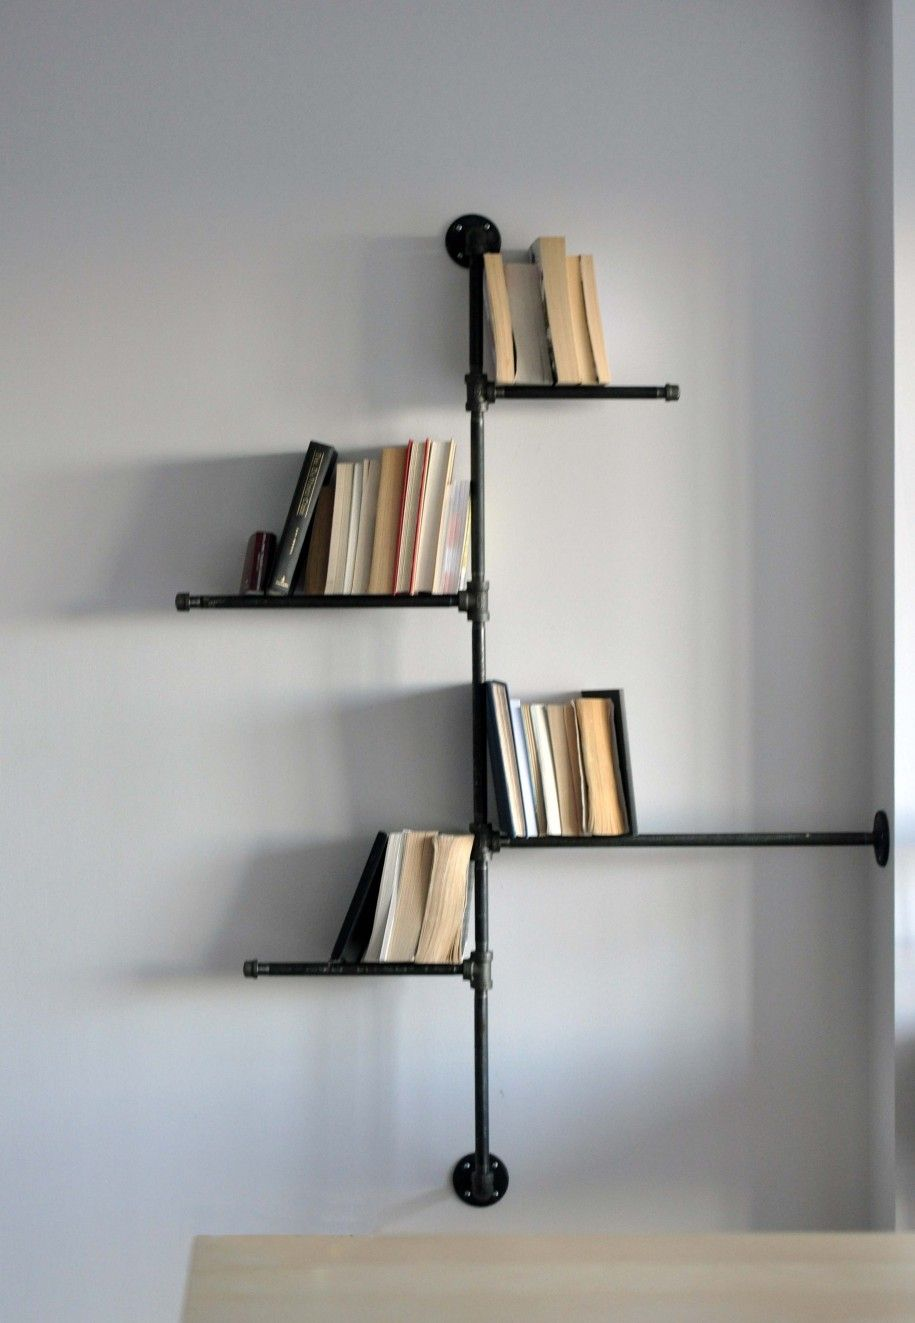 wall sale book large buy for shelf lights bookcase home shelves where hanging cool side bookshelves small plastic mounted to bookshelf with designs decoration black colored decorative